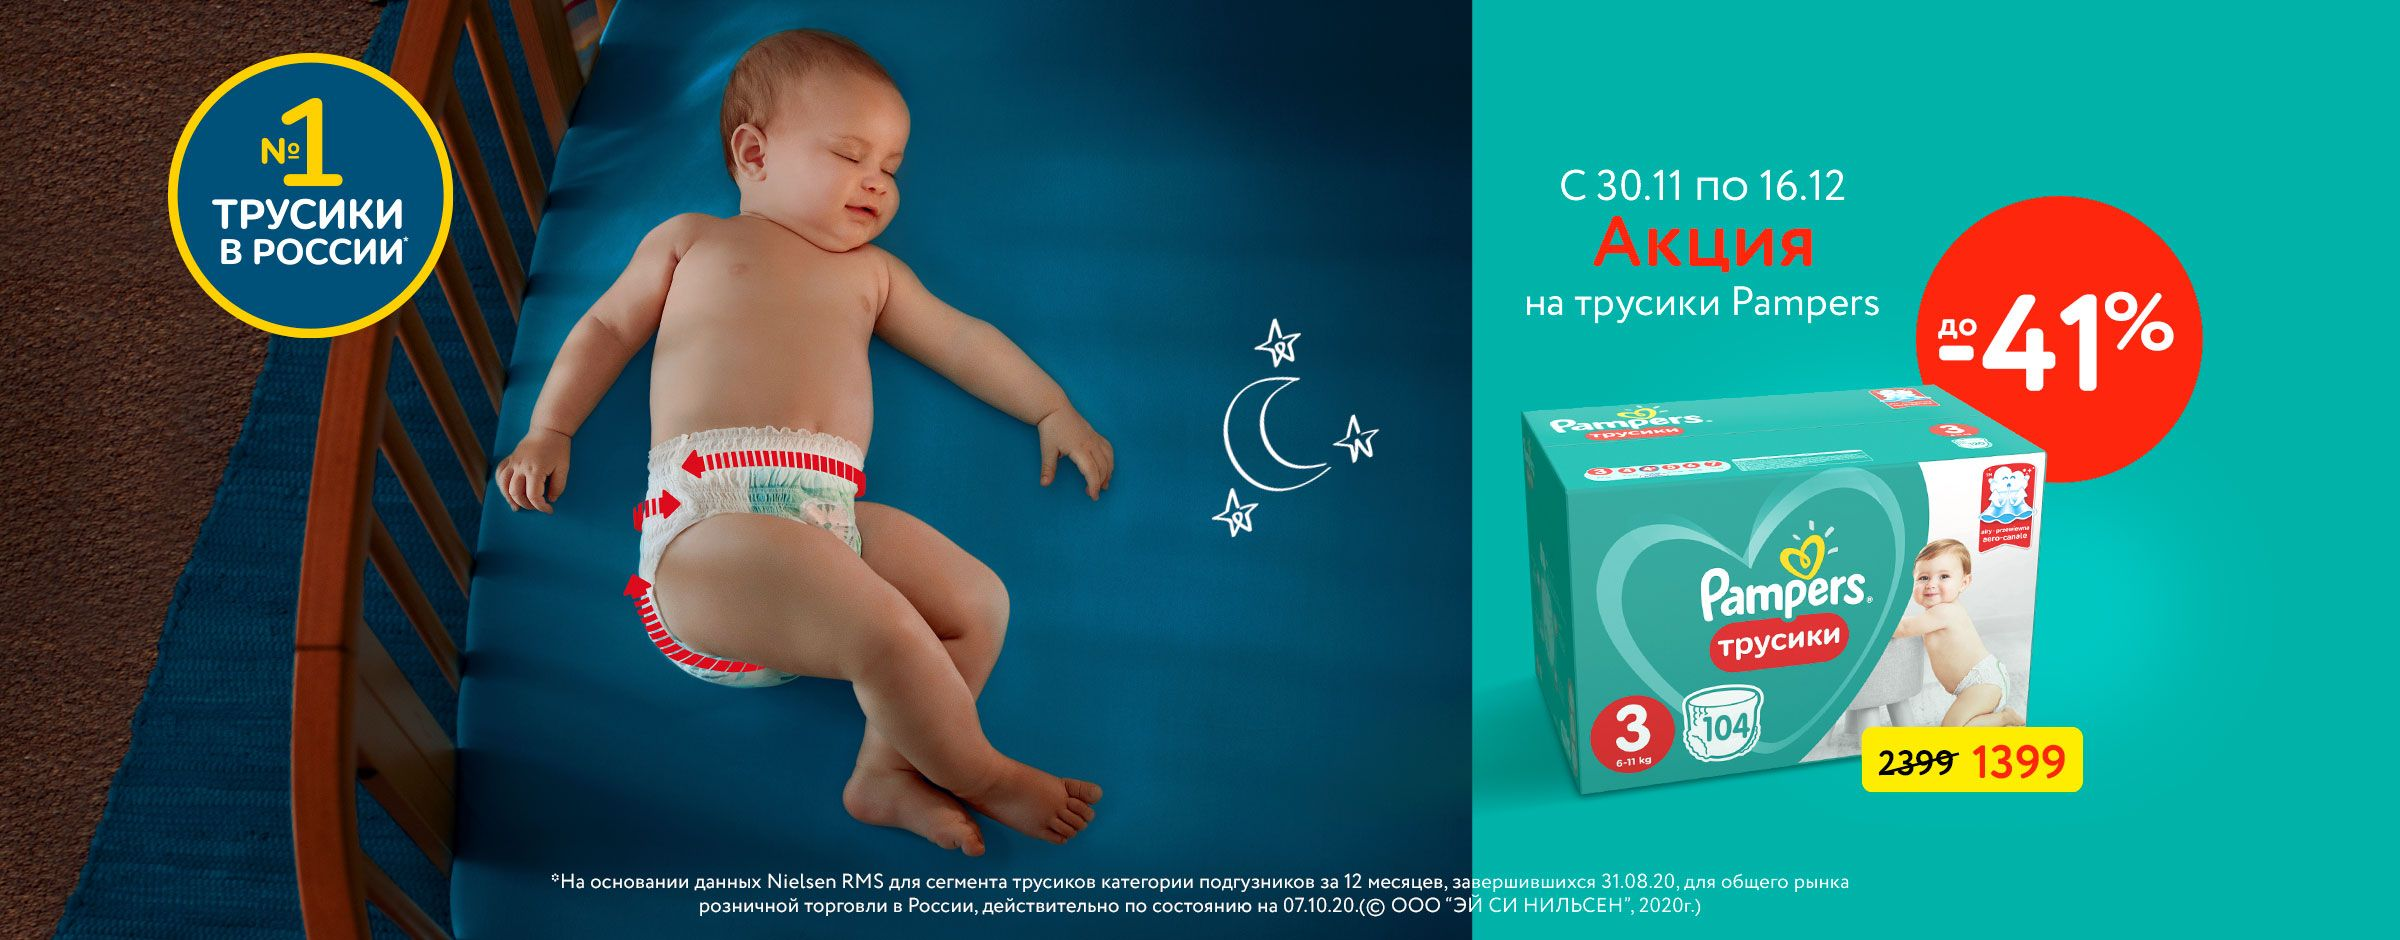 До 41% на Pampers Pants